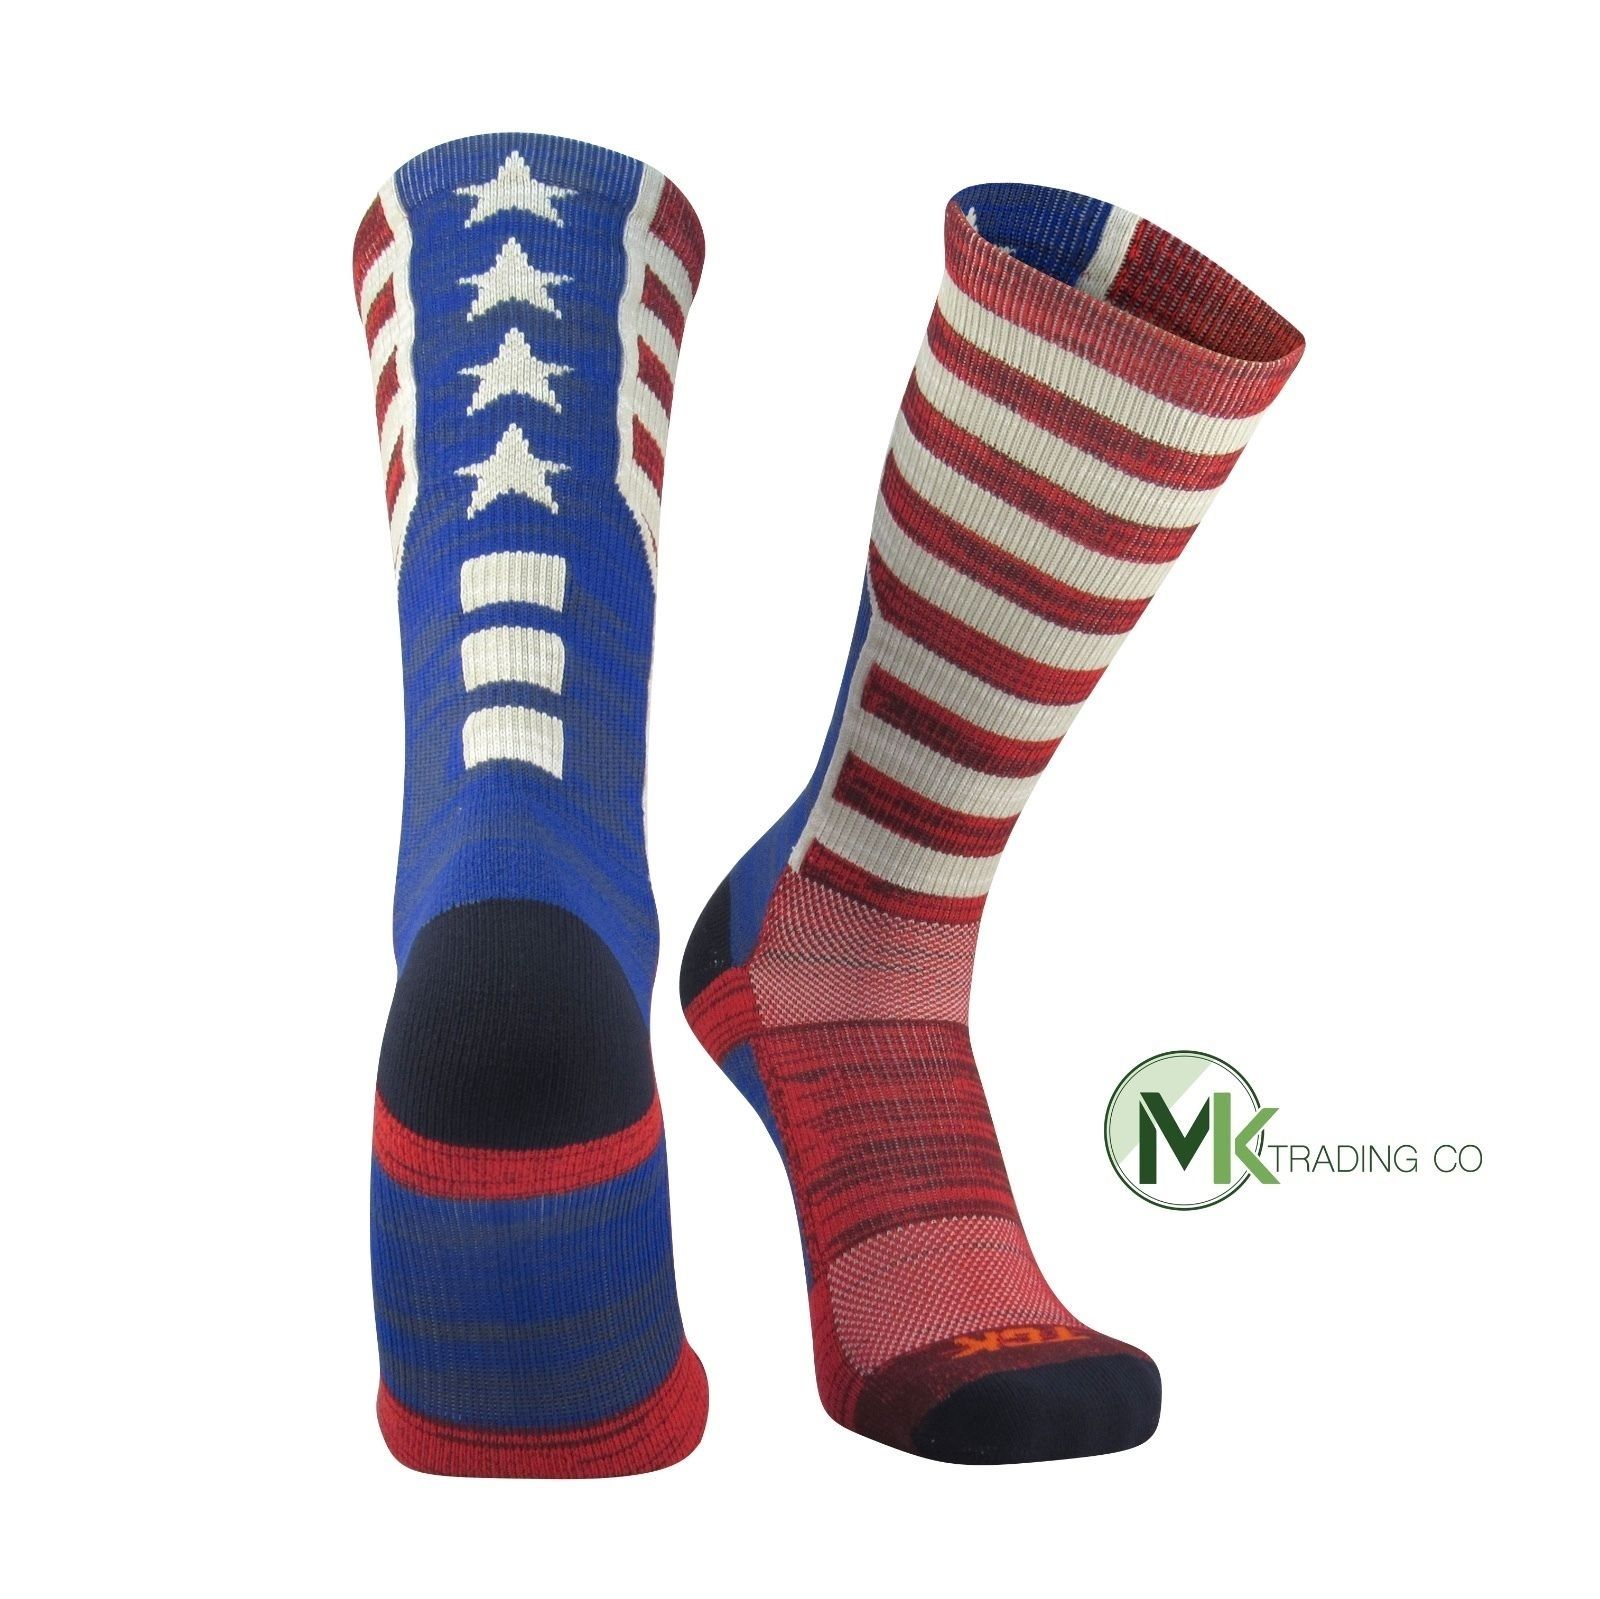 TCK USA Old Glory Flag, Heather, Red White Blue, Basketball Football Crew Socks